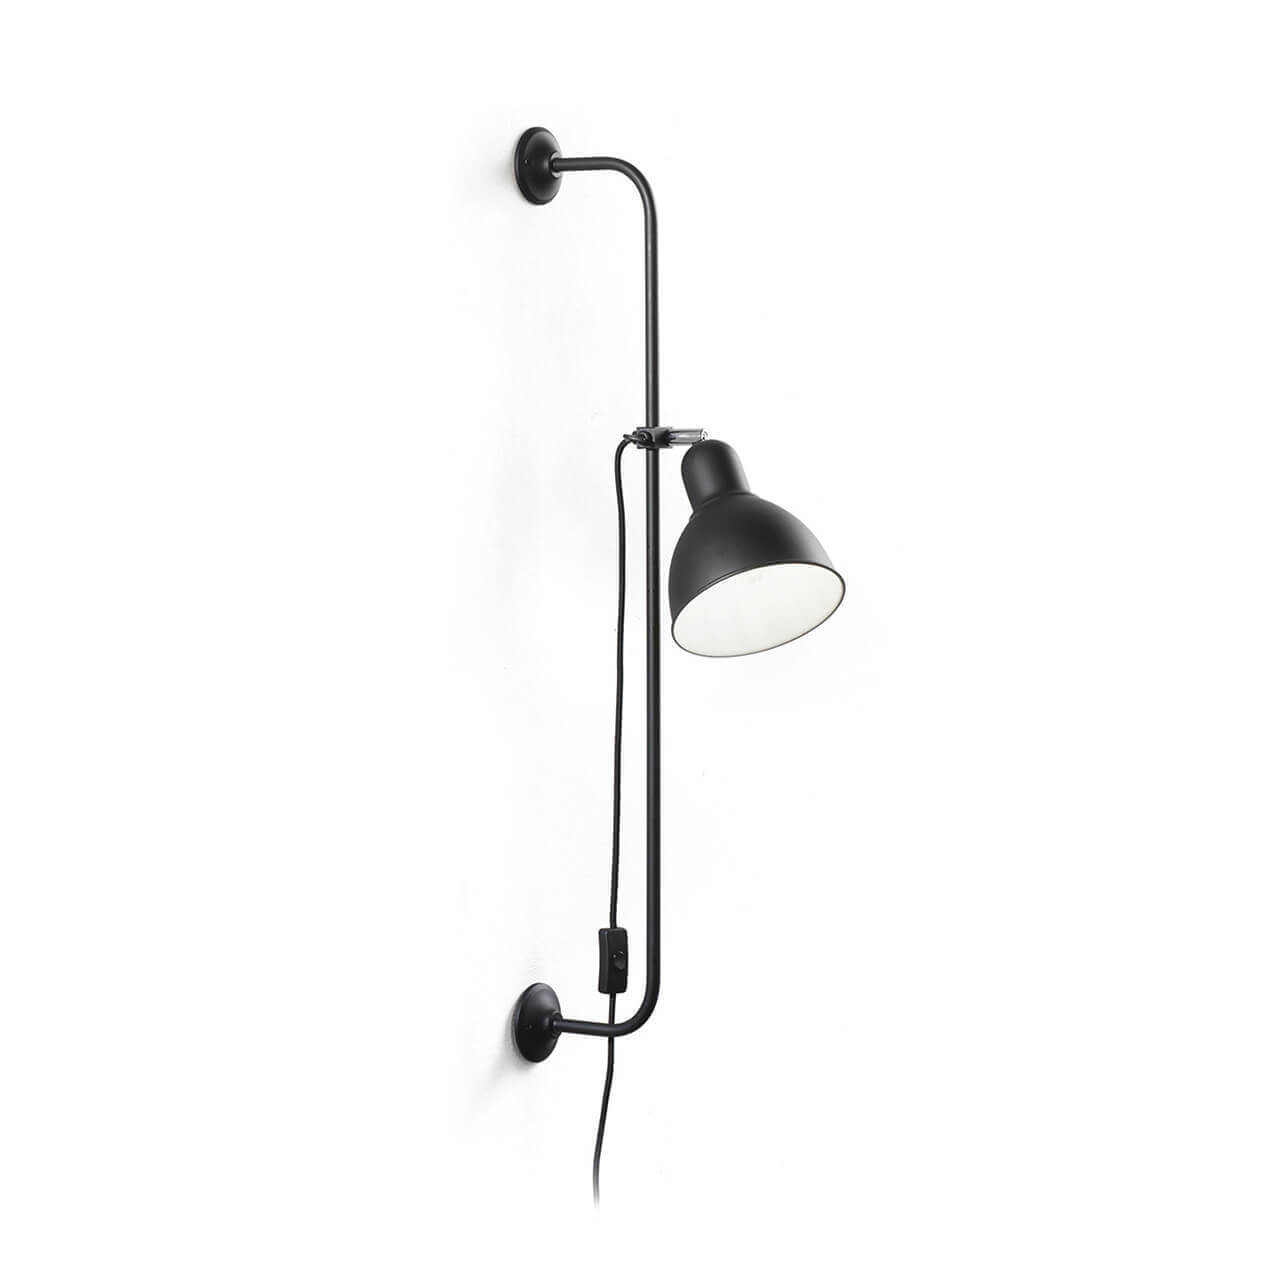 Спот Ideal Lux Shower AP1 Nero Shower спот ideal lux page ap round nero page round nero